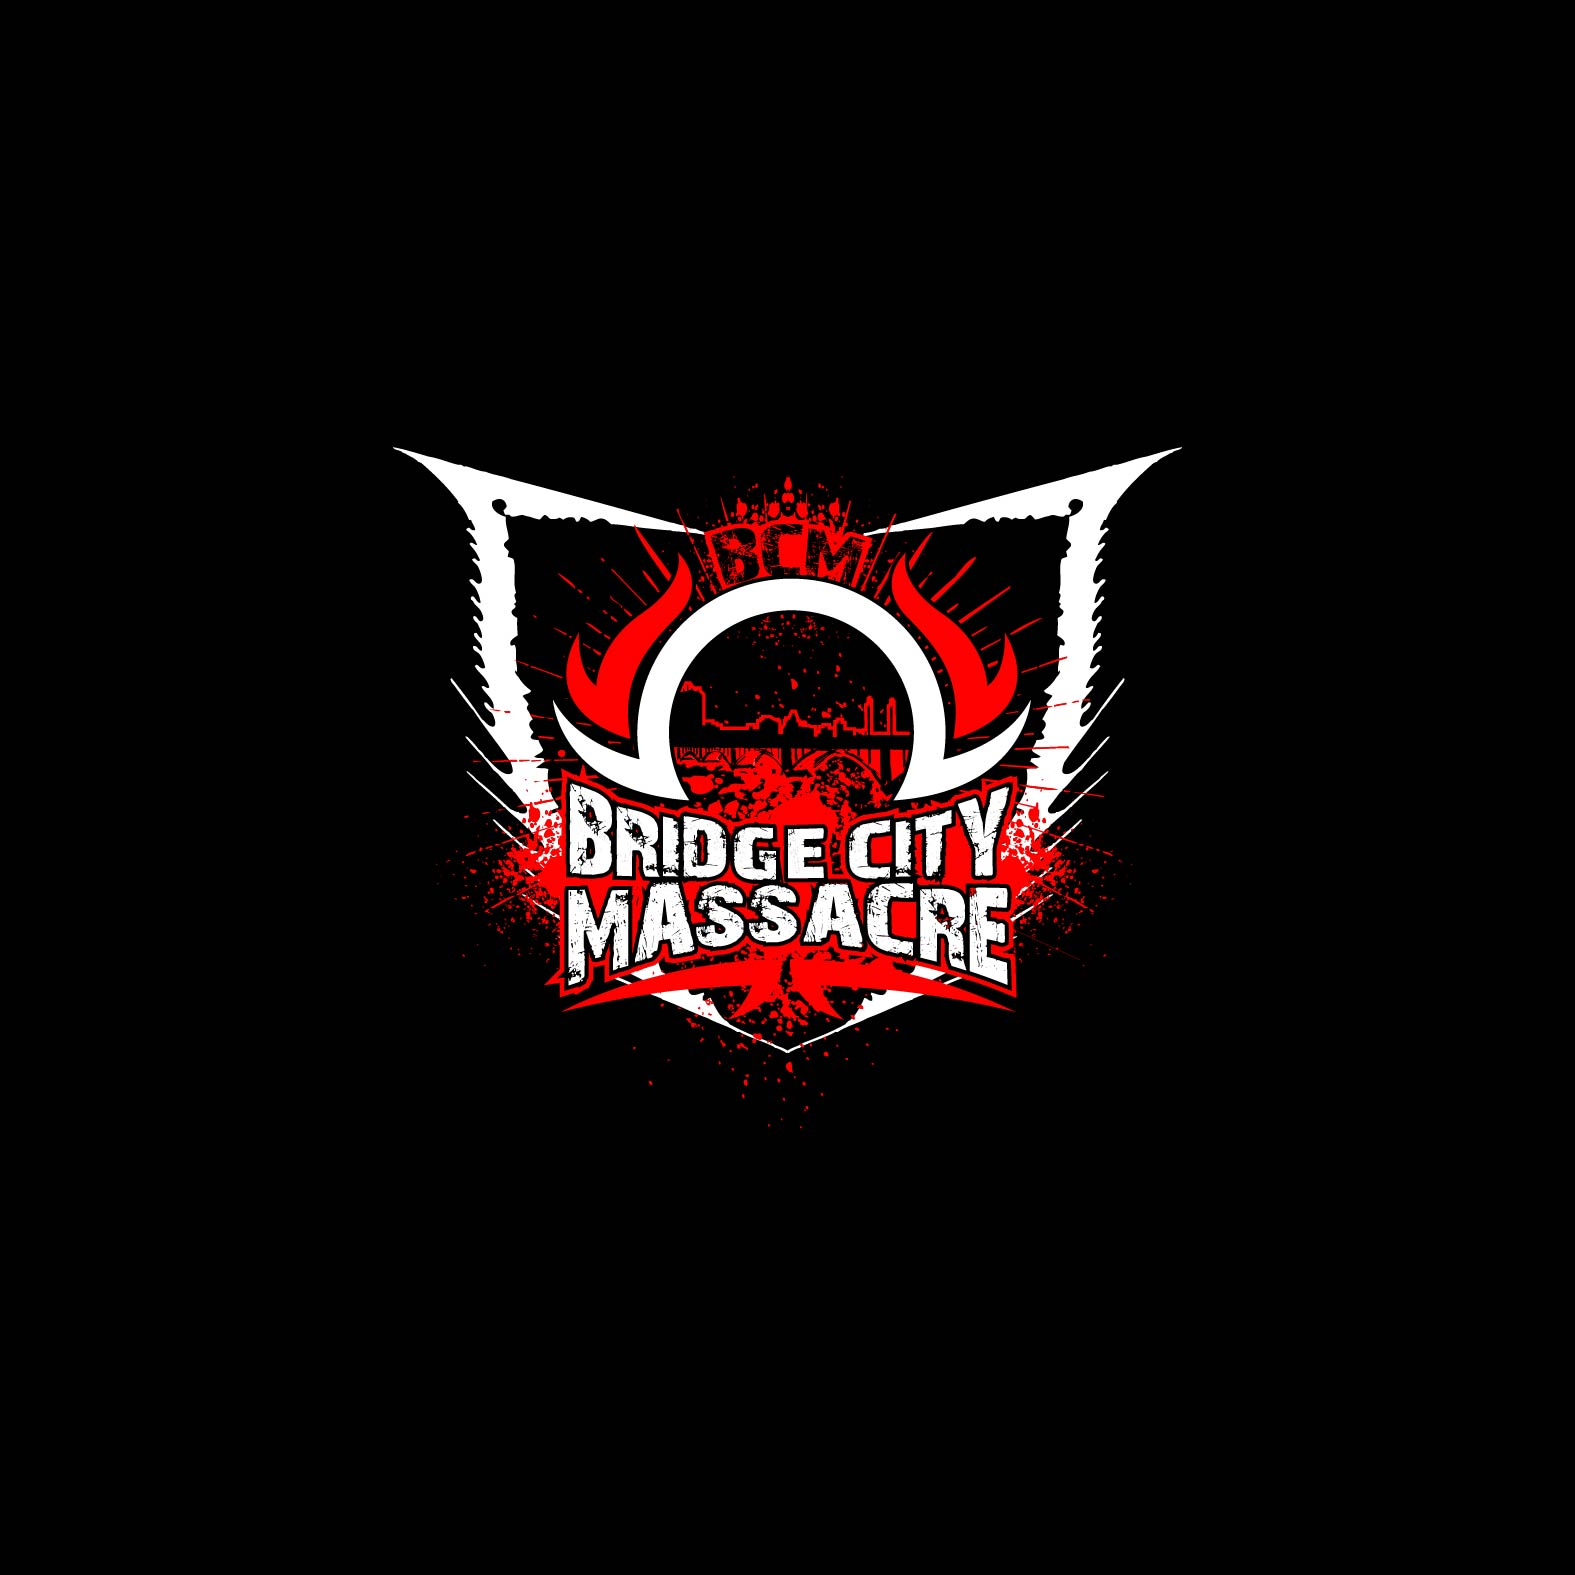 Logo Design by lagalag - Entry No. 46 in the Logo Design Contest New Logo Design for Bridge City Massacre.